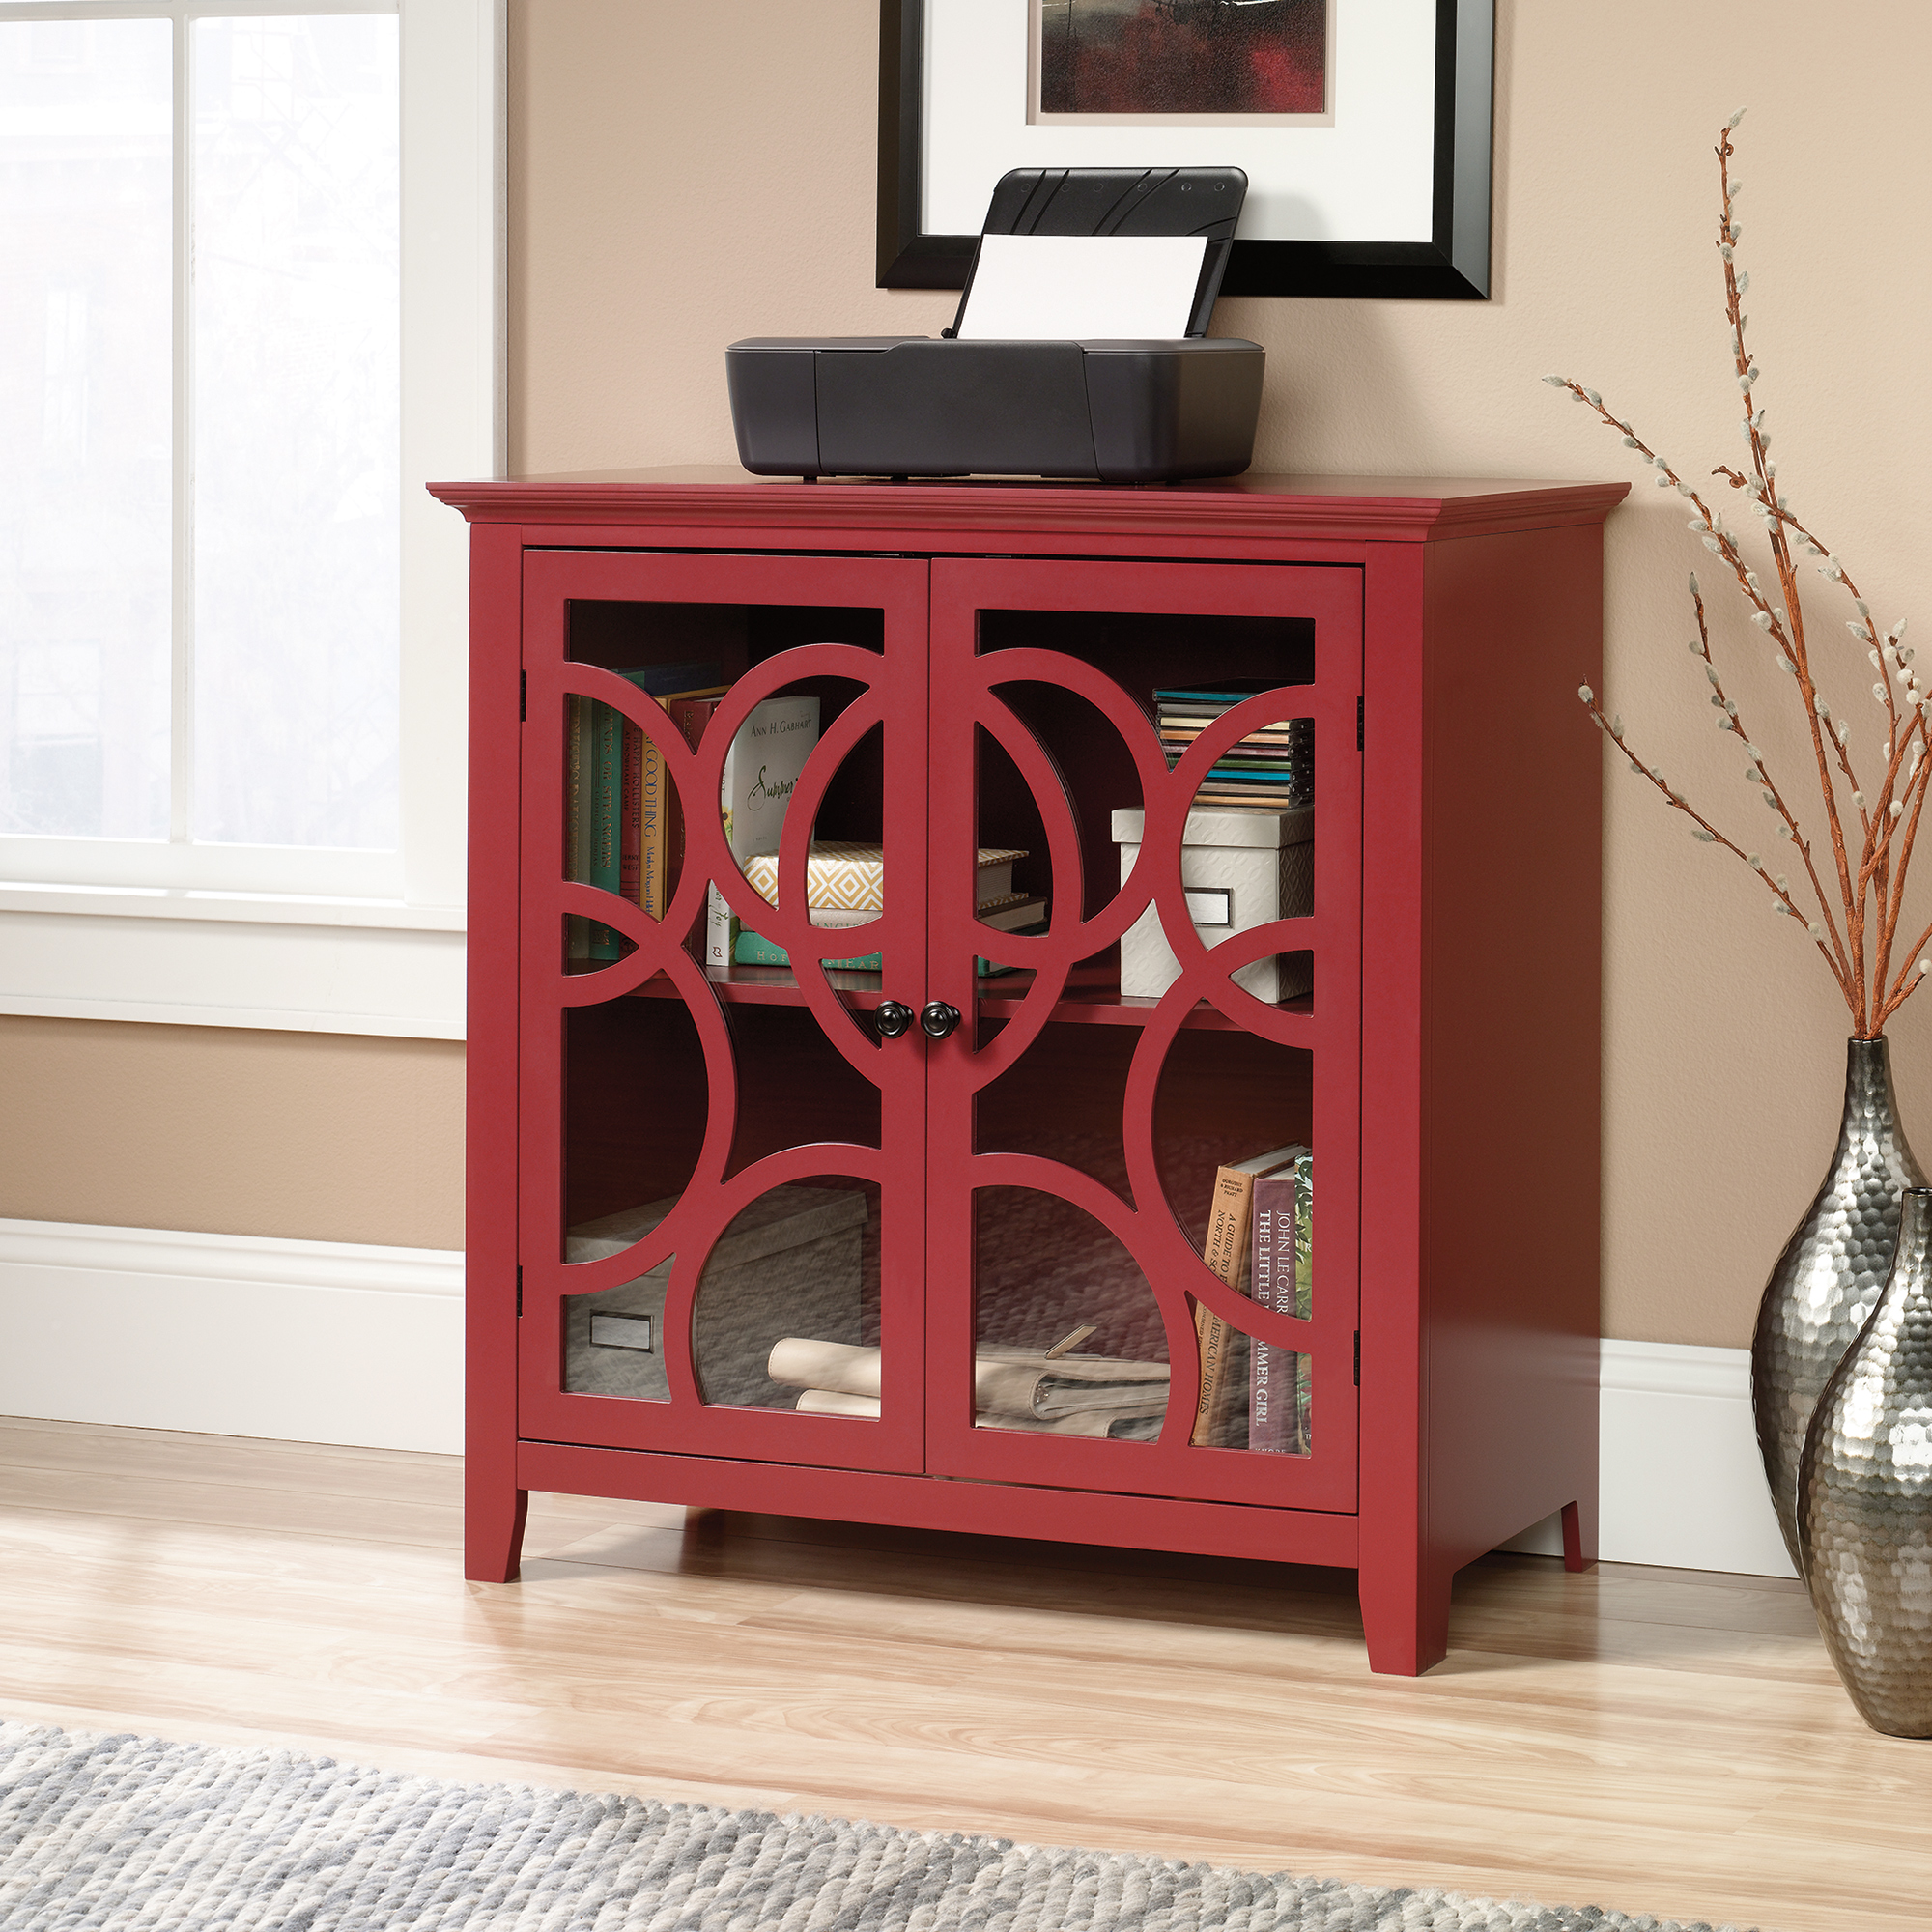 shoal creek elise storage cabinet with glass doors sauder accent table decorative and display pottery barn frog drum end mirror moroccan mosaic garden xmas tablecloths runners